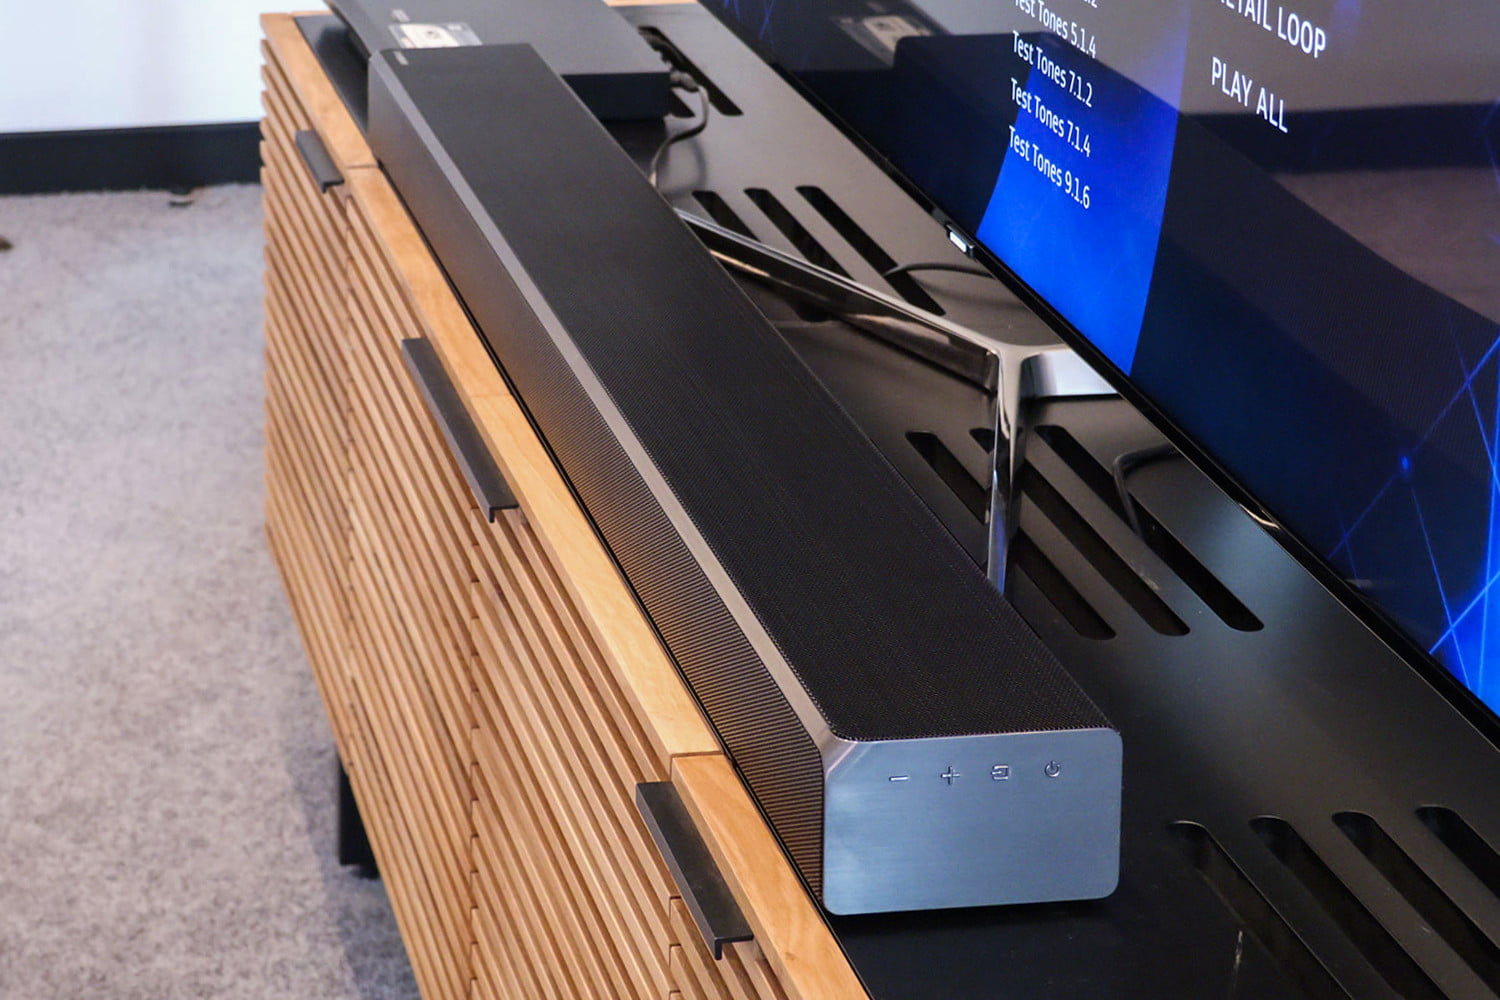 Hilo averias Y Problemas Tecnicos De Xbox One 1954095 s3910 furthermore Heos Home Cinema Wireless Soundbar And Subwoofer System further 312226186648155754 in addition Jbl Pulse 2 Portable Wireless Speaker Black 10140775 Pdt together with Sonos Playbase Slim Soundbase Under Your Tv. on digital output to tv speakers